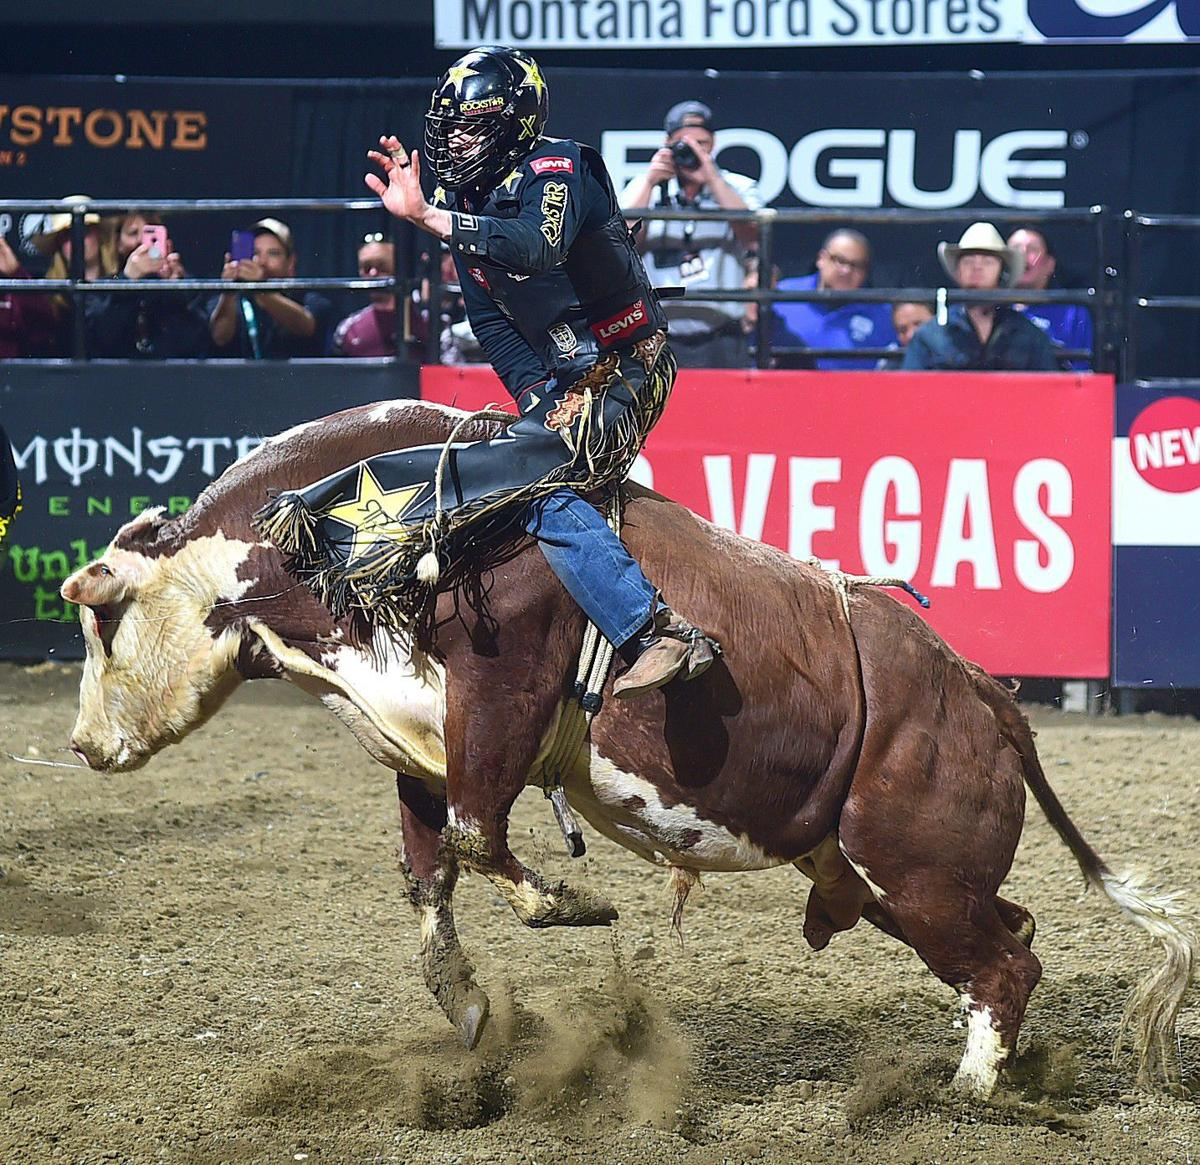 Photos: Final day of the PBR | 406mtsports | 406mtsports com